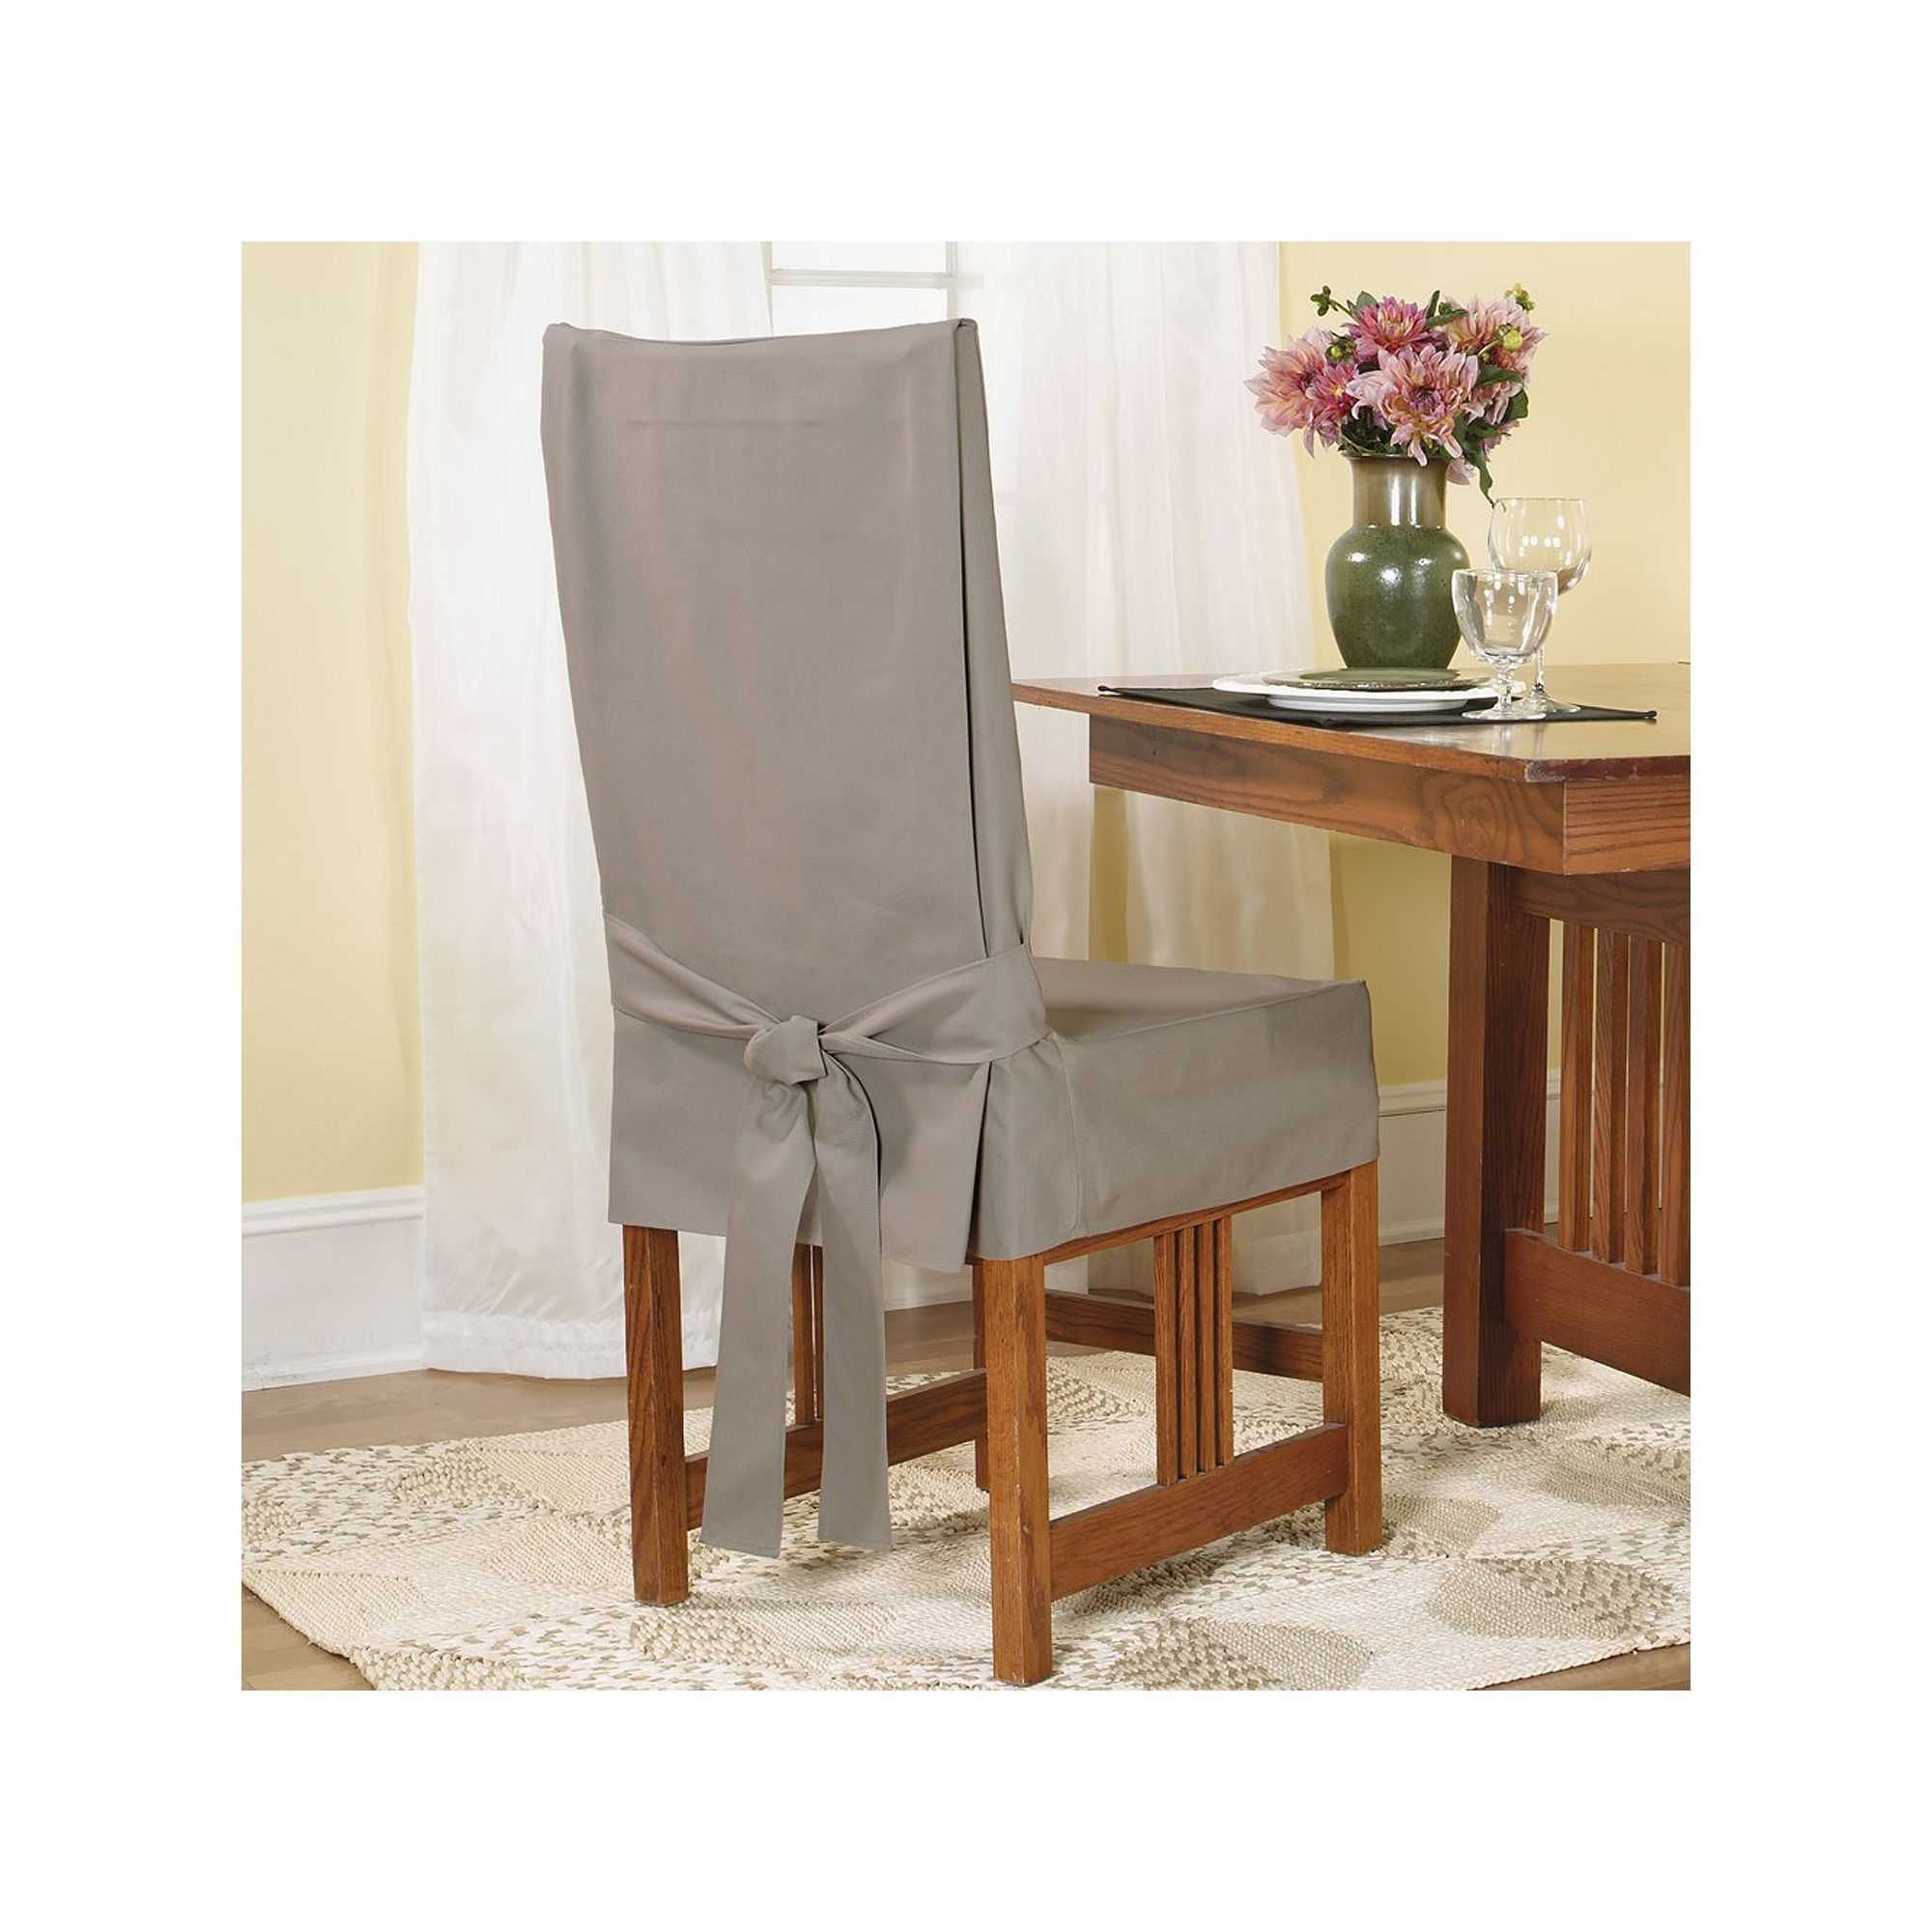 Sure Fit Soft Suede Shorty Dining Room Chair Slipcover Custom Sure Fit Short Dining Chair Slipcover Green  Dining Chair Design Ideas